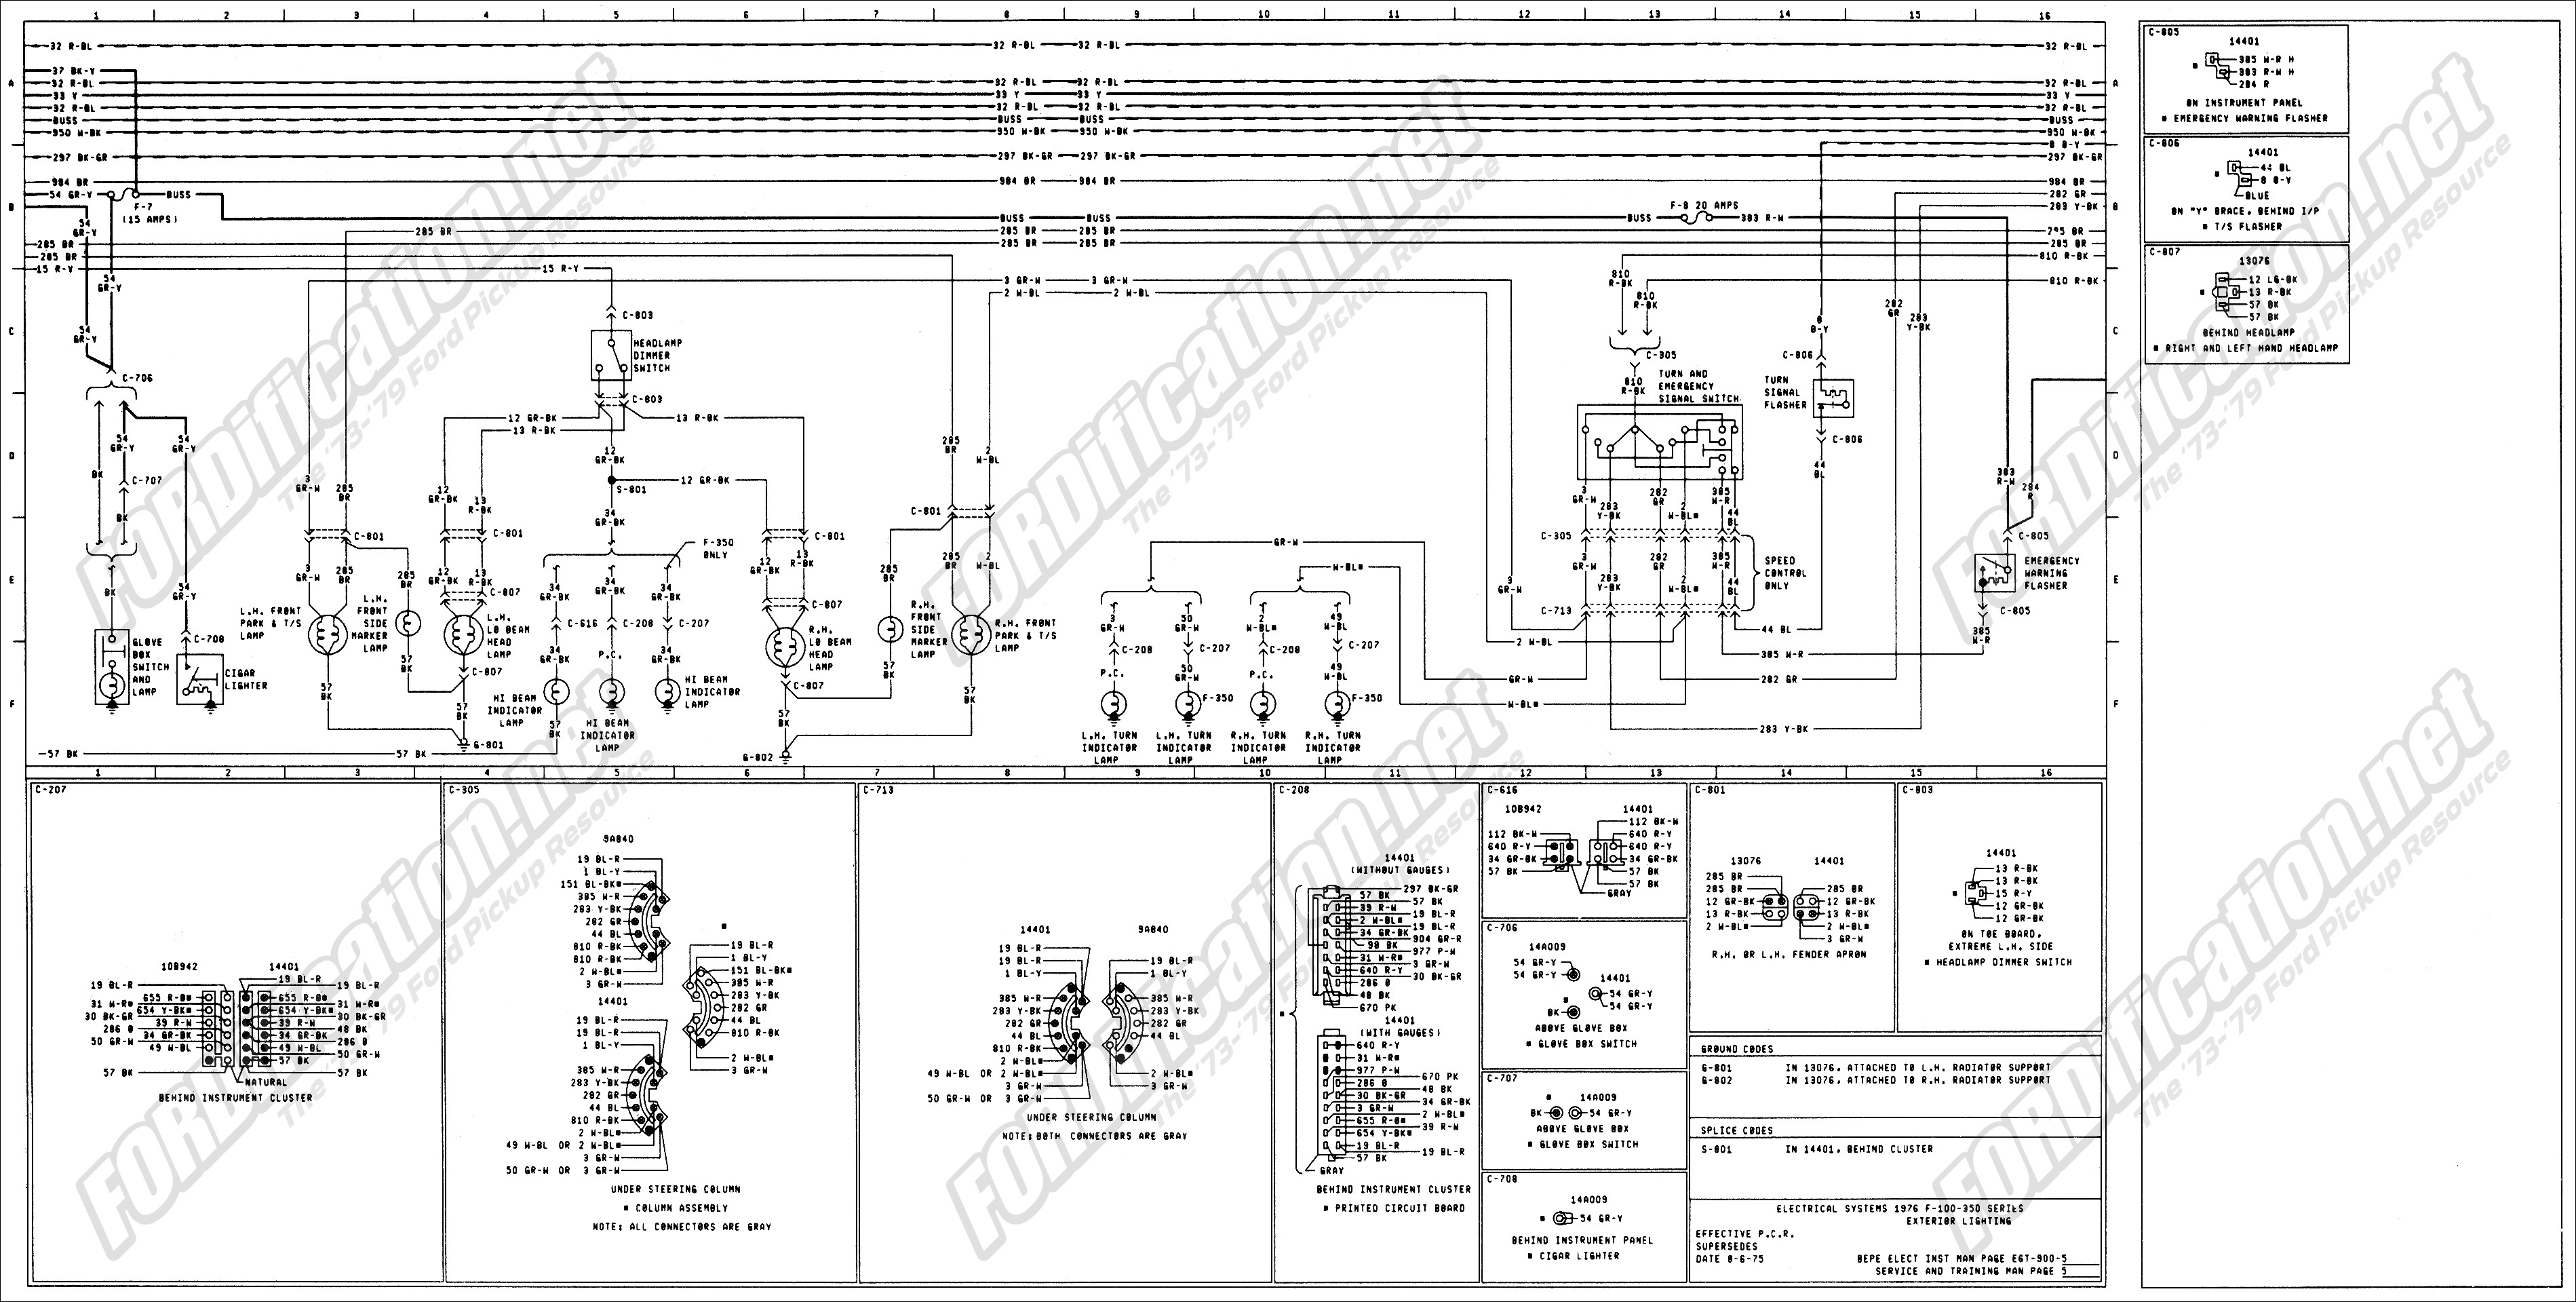 wiring diagram for 1979 ford f250 data wiring diagram